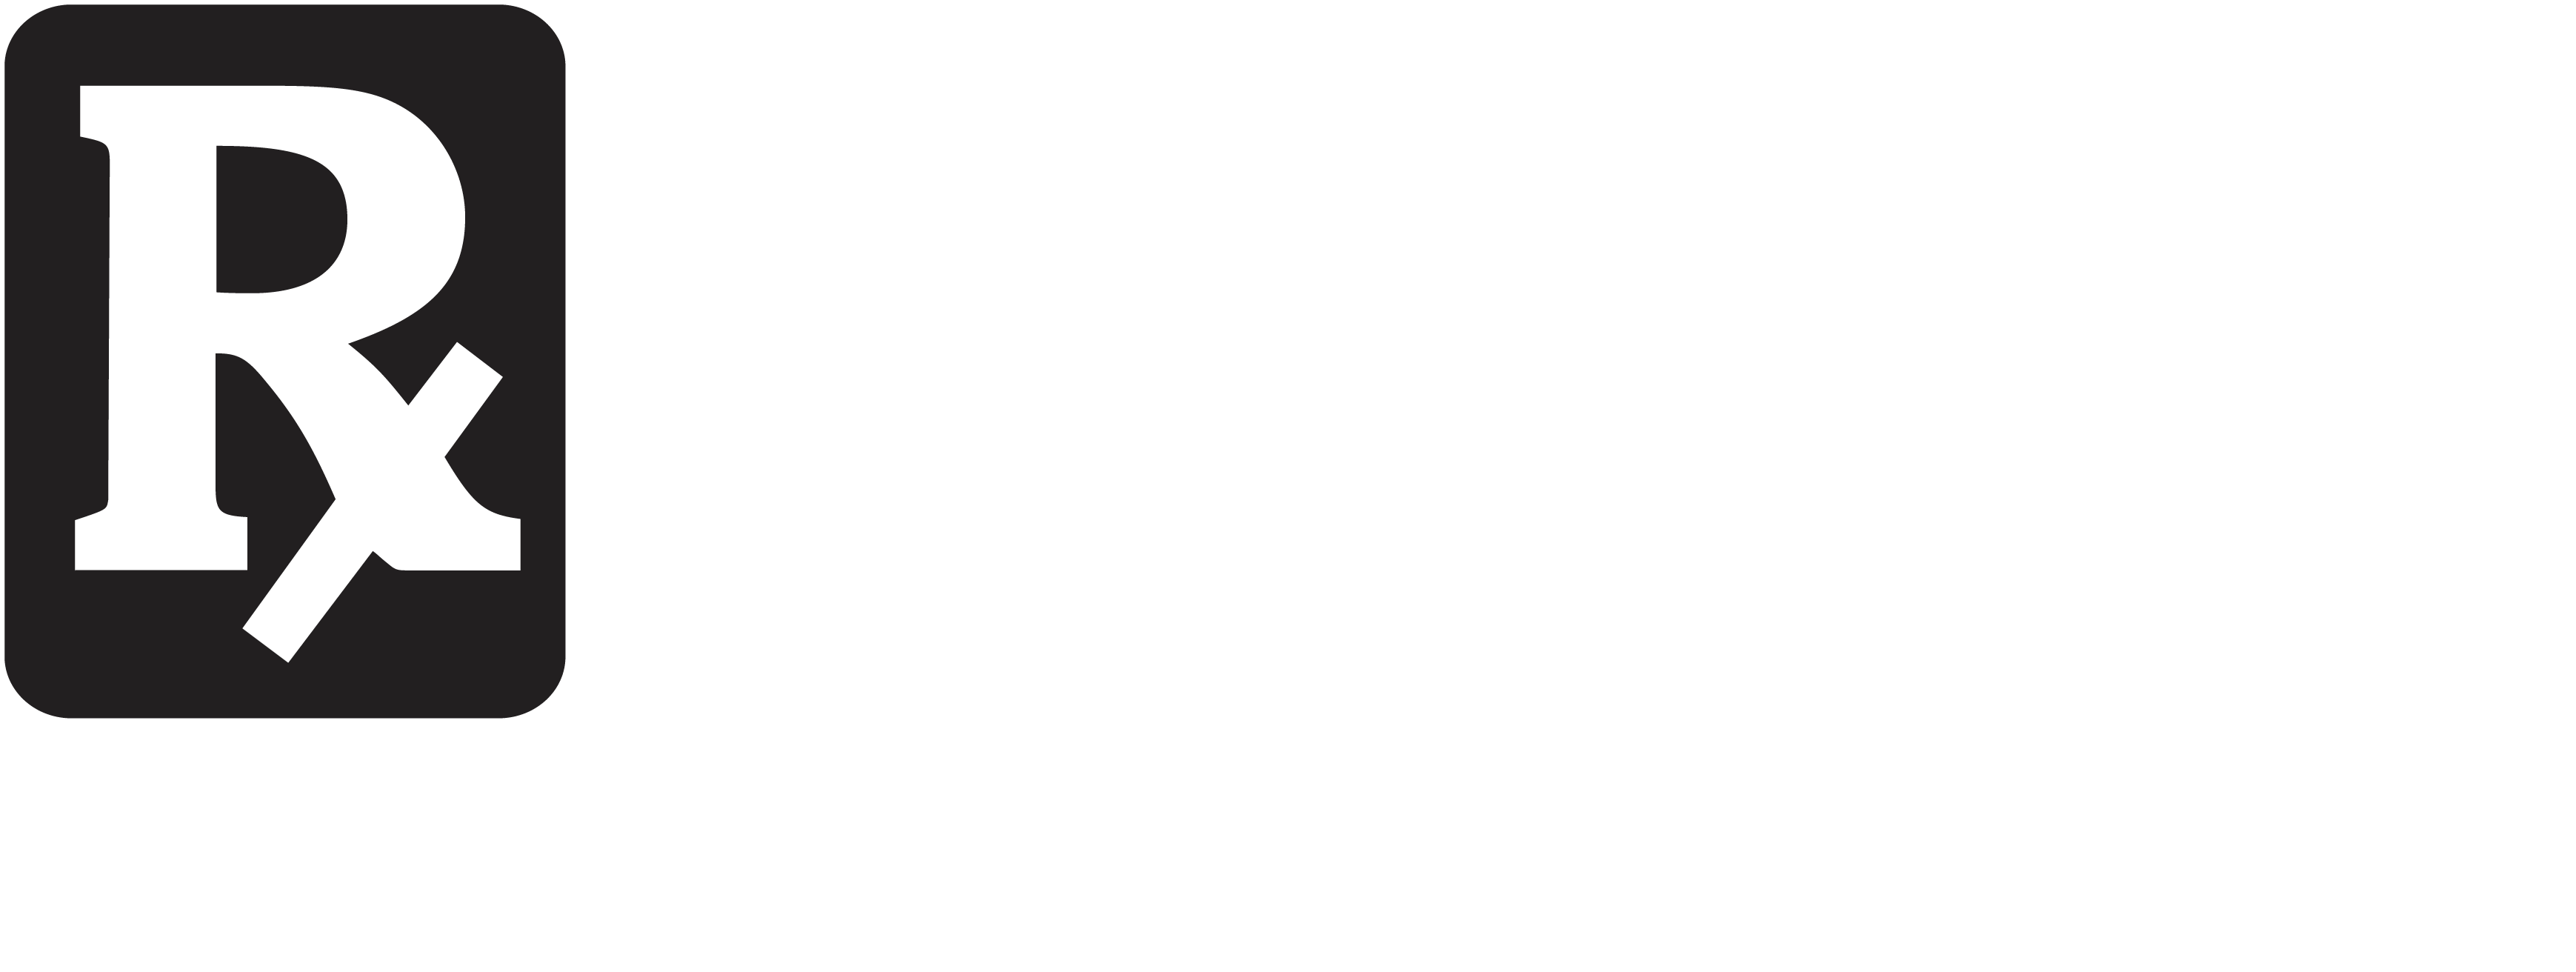 Rx Express Pharmacy of Navarre